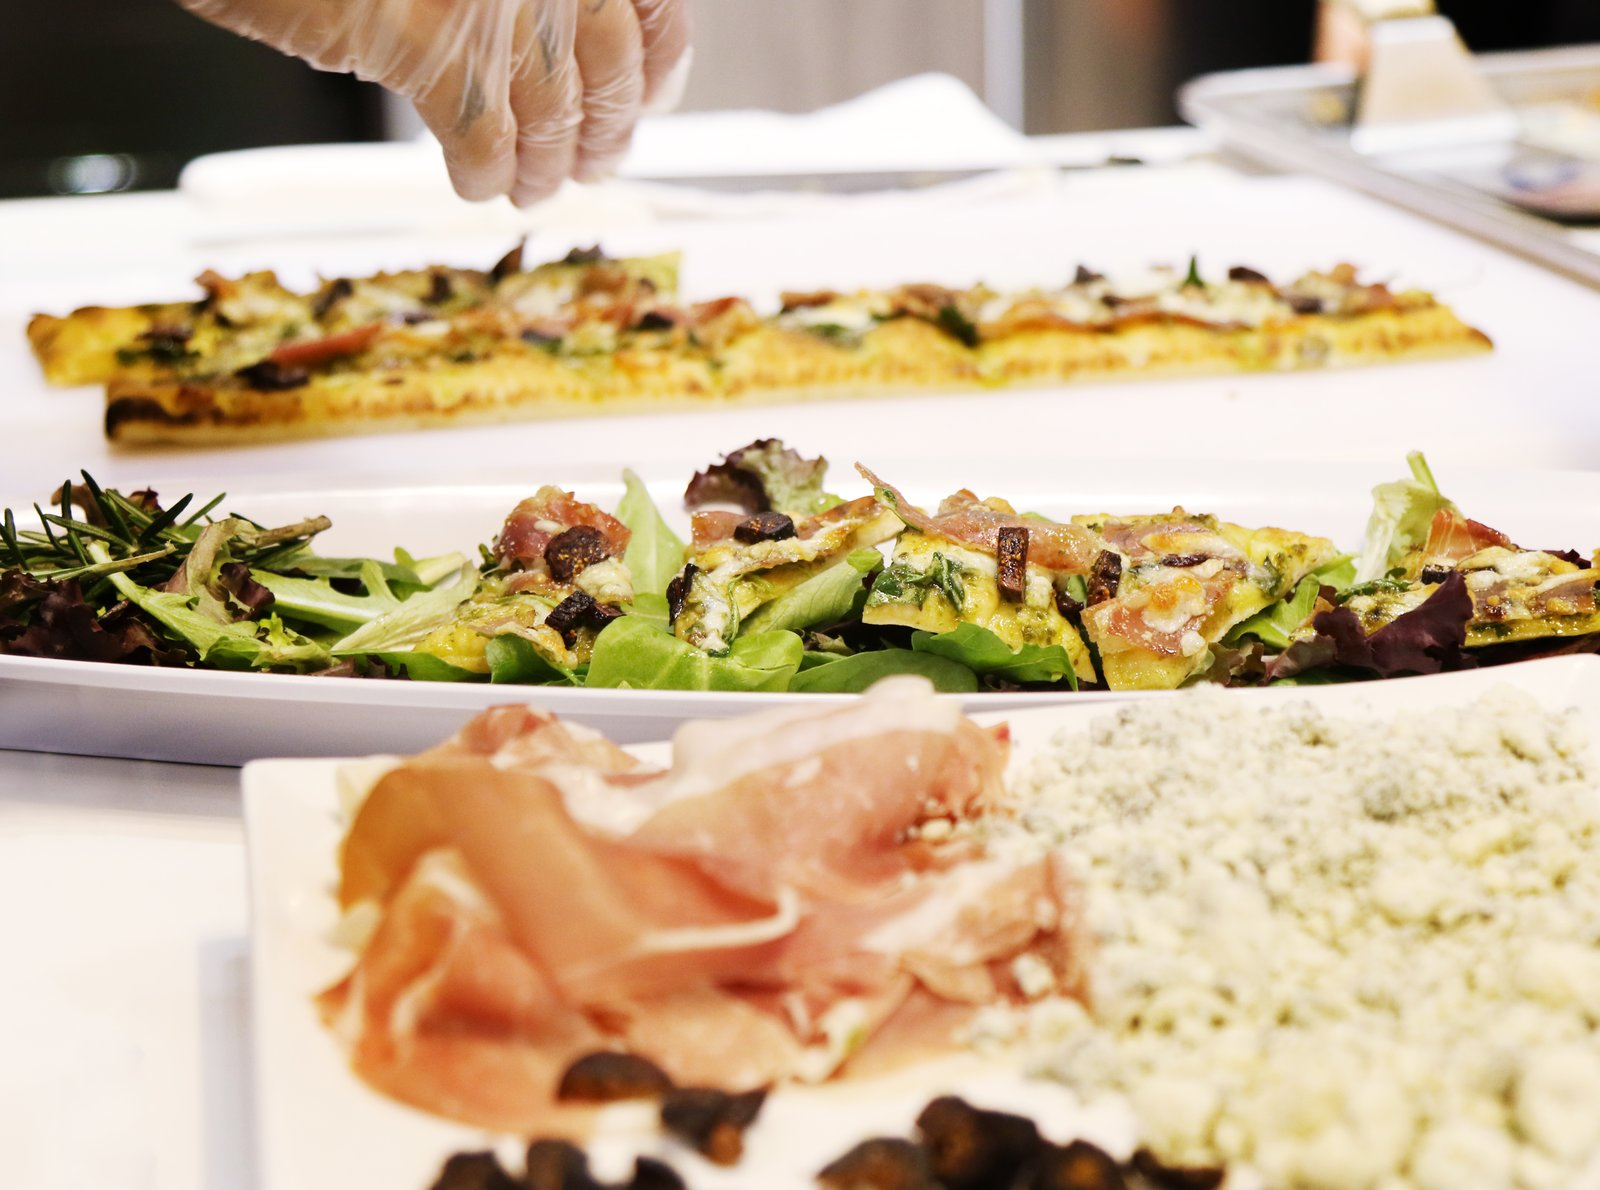 Flatbread topped with prosciutto, stilton cheese, figs, and arugula was part of the menu at Signature Kitchen Suite's impressive 4,000-square-foot exhibition booth.  Photo 8 of 8 in Signature Kitchen Suite's Modern Pavilion Shines at KBIS